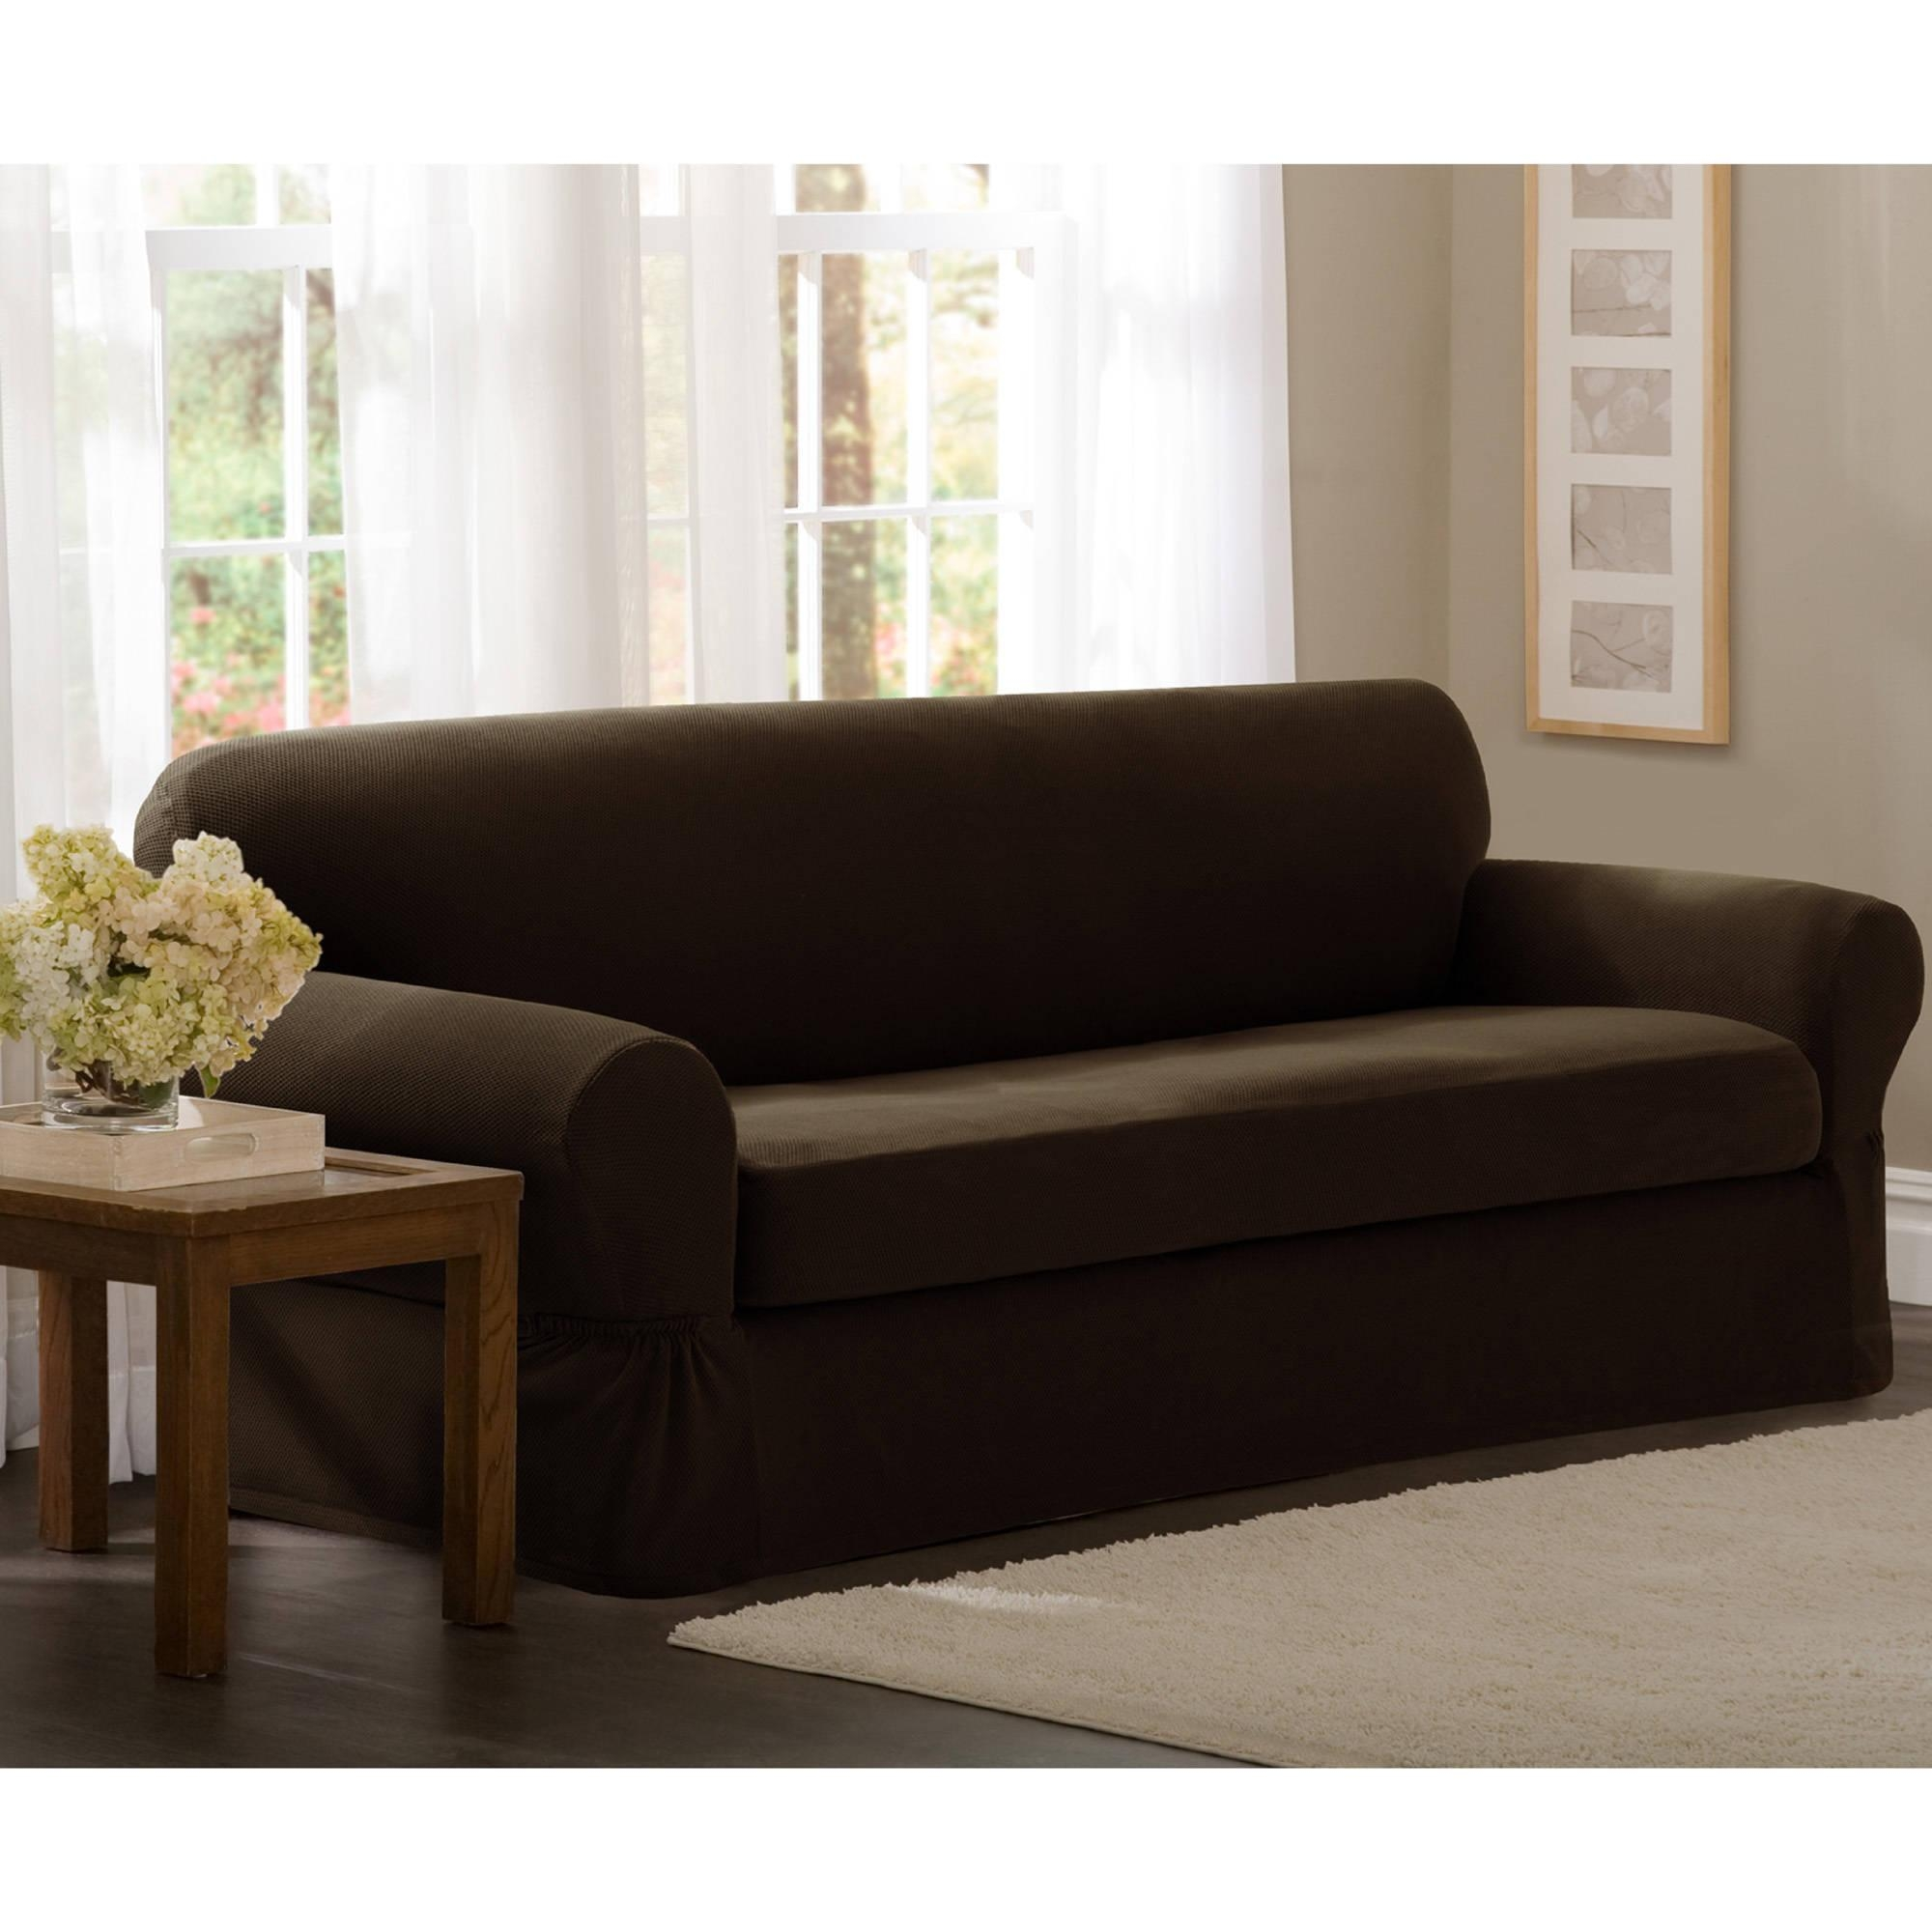 Sofas Center : Formidableetch Sofa Slipcover Image Inspirations For Suede Slipcovers For Sofas (View 10 of 20)